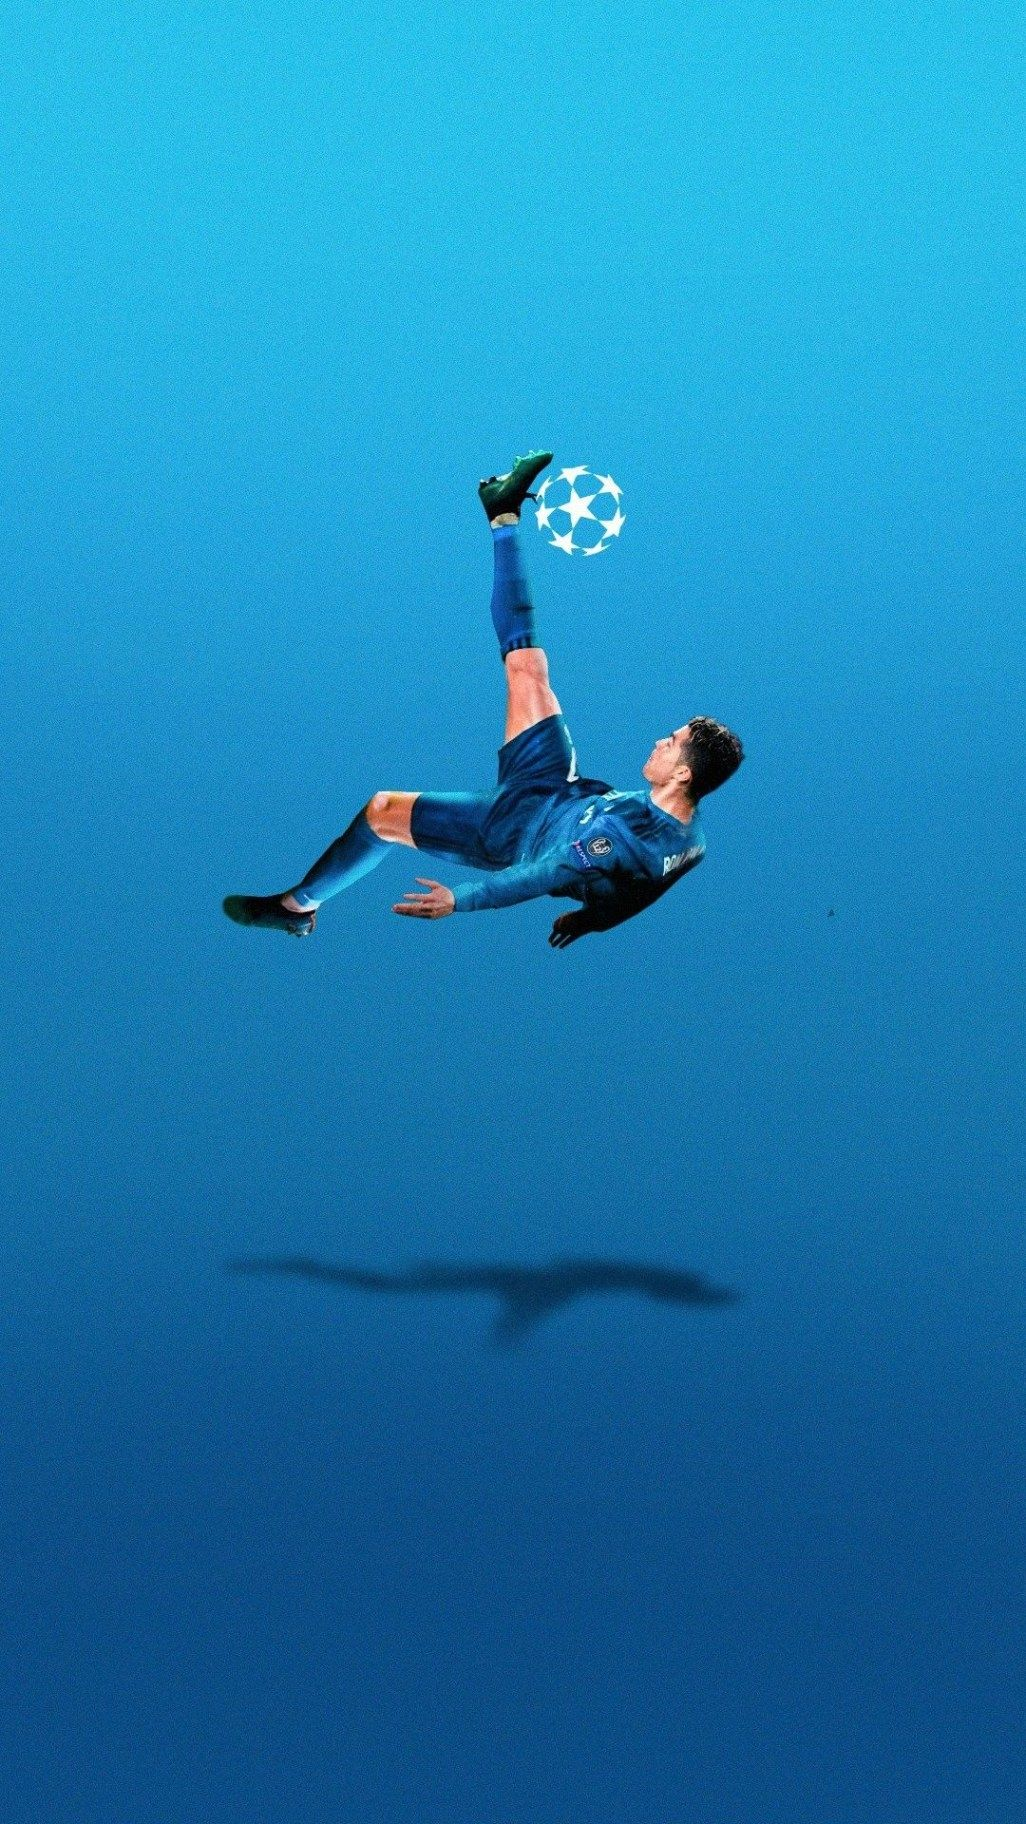 Soccer Skills. One of the greatest sporting events on